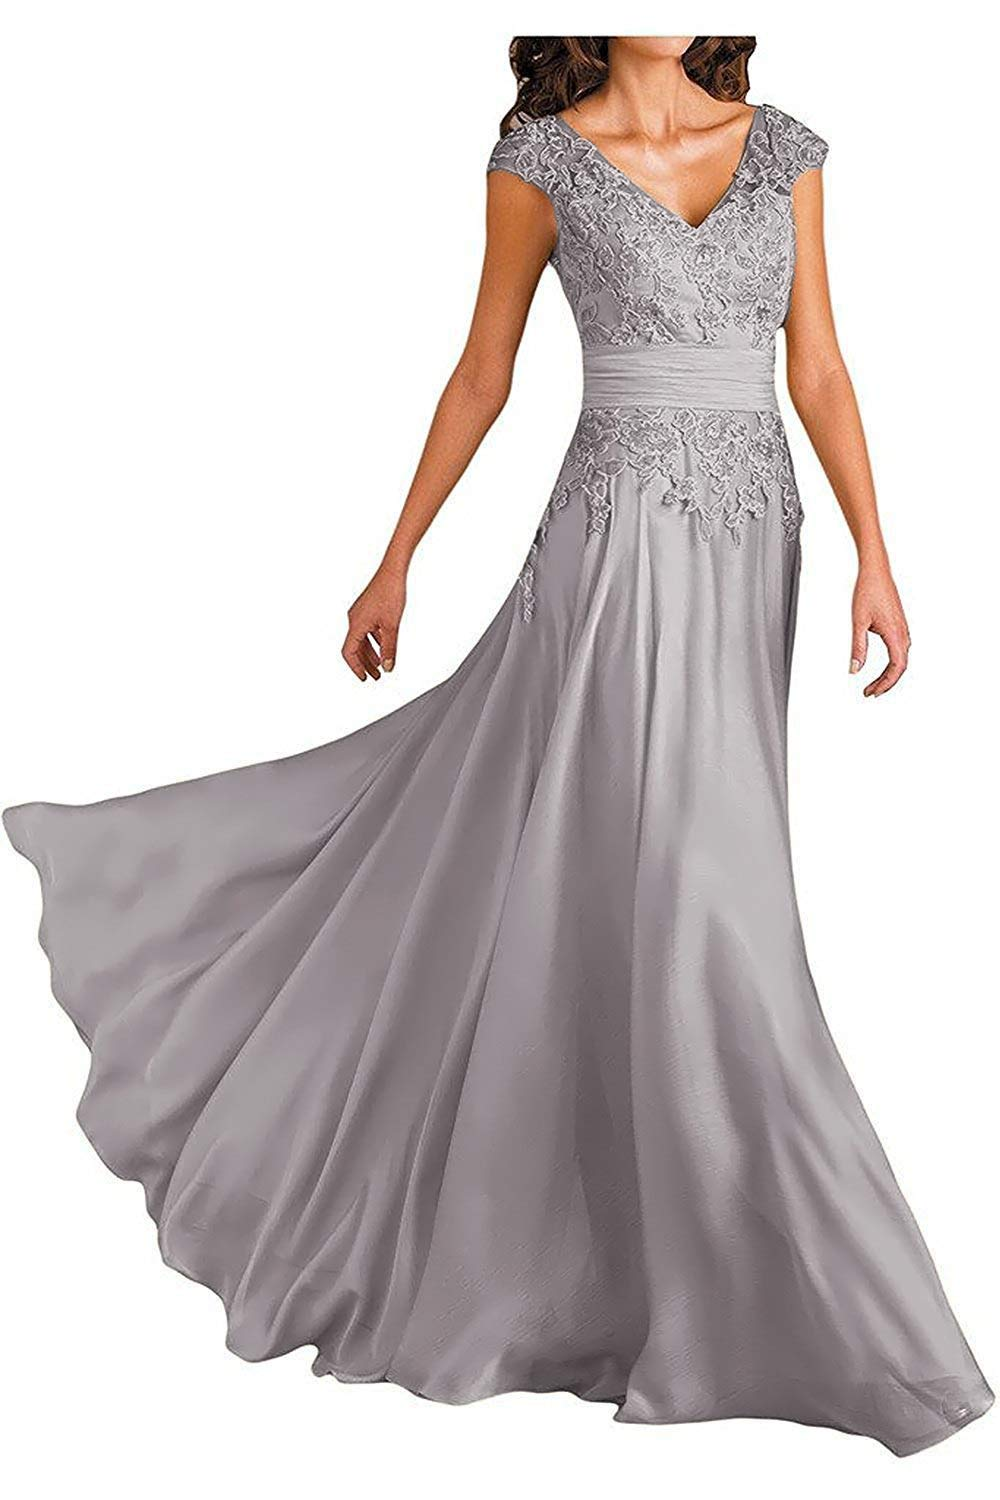 Women S Gray Color V Neck Cap Sleeve Lace Mother Bride Dress Long Maxi Formal Evening Gown